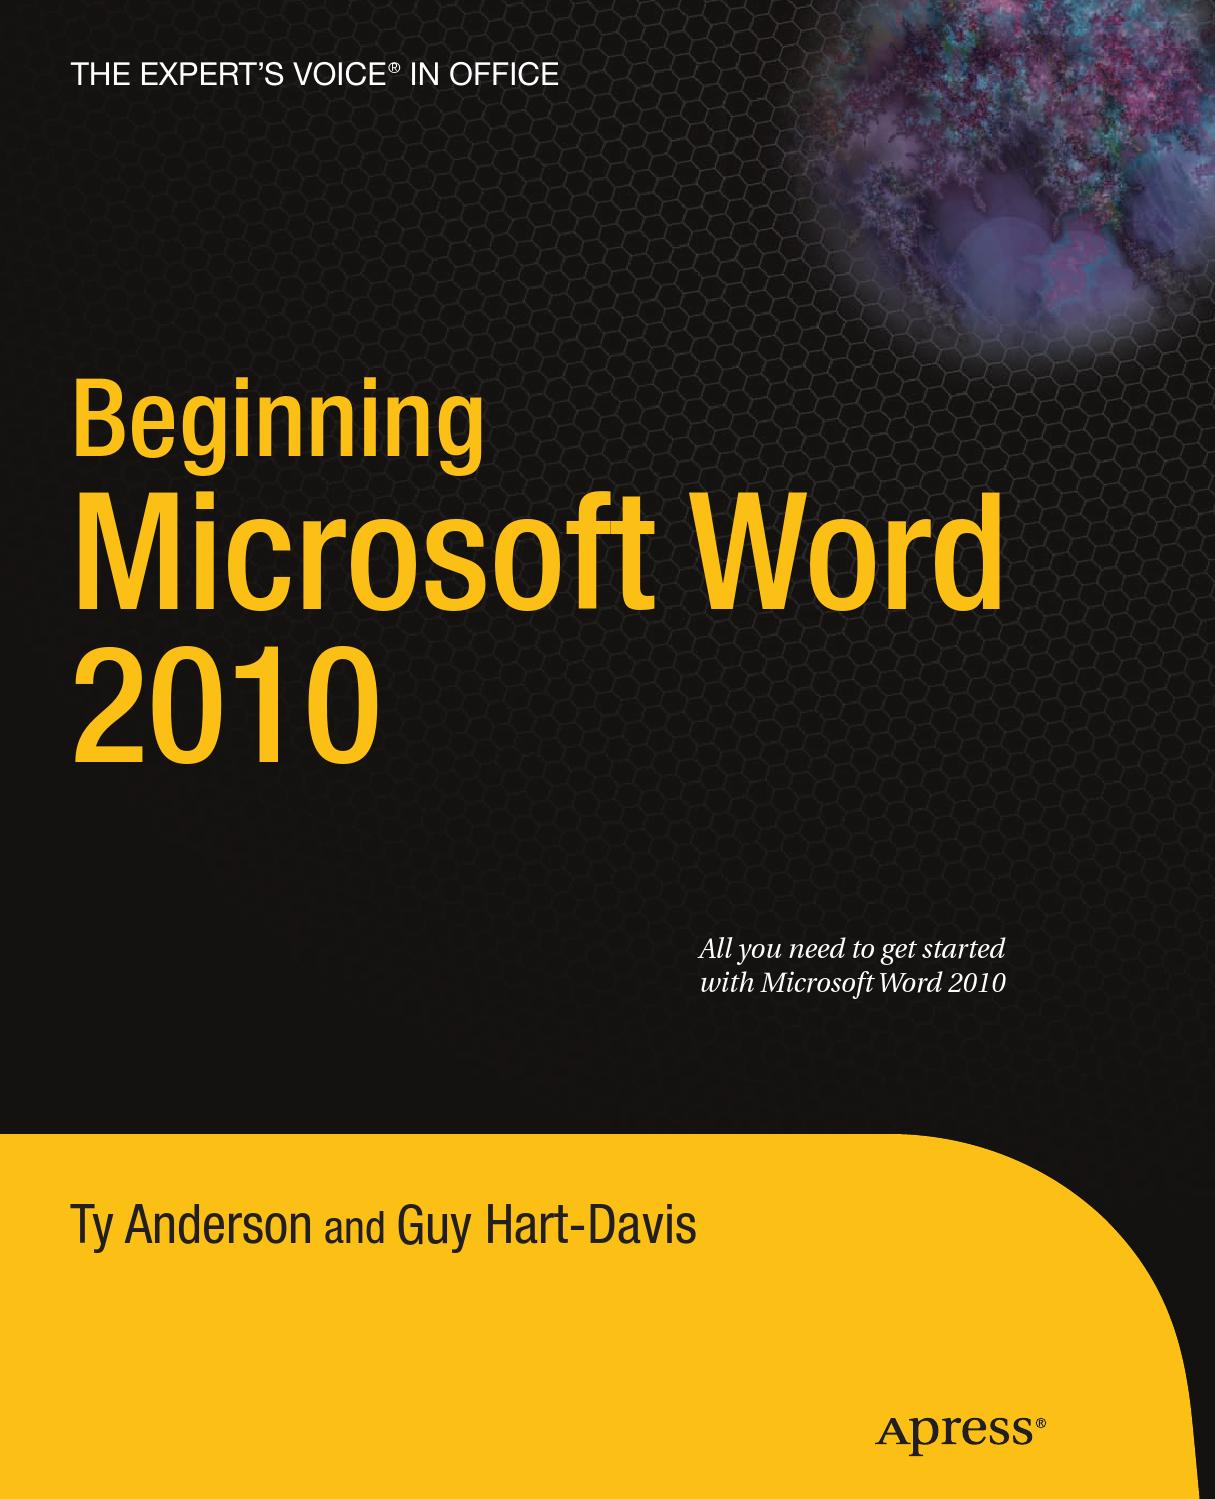 Word 2010 beginning microsoft word 2010 (anche vba) (2010